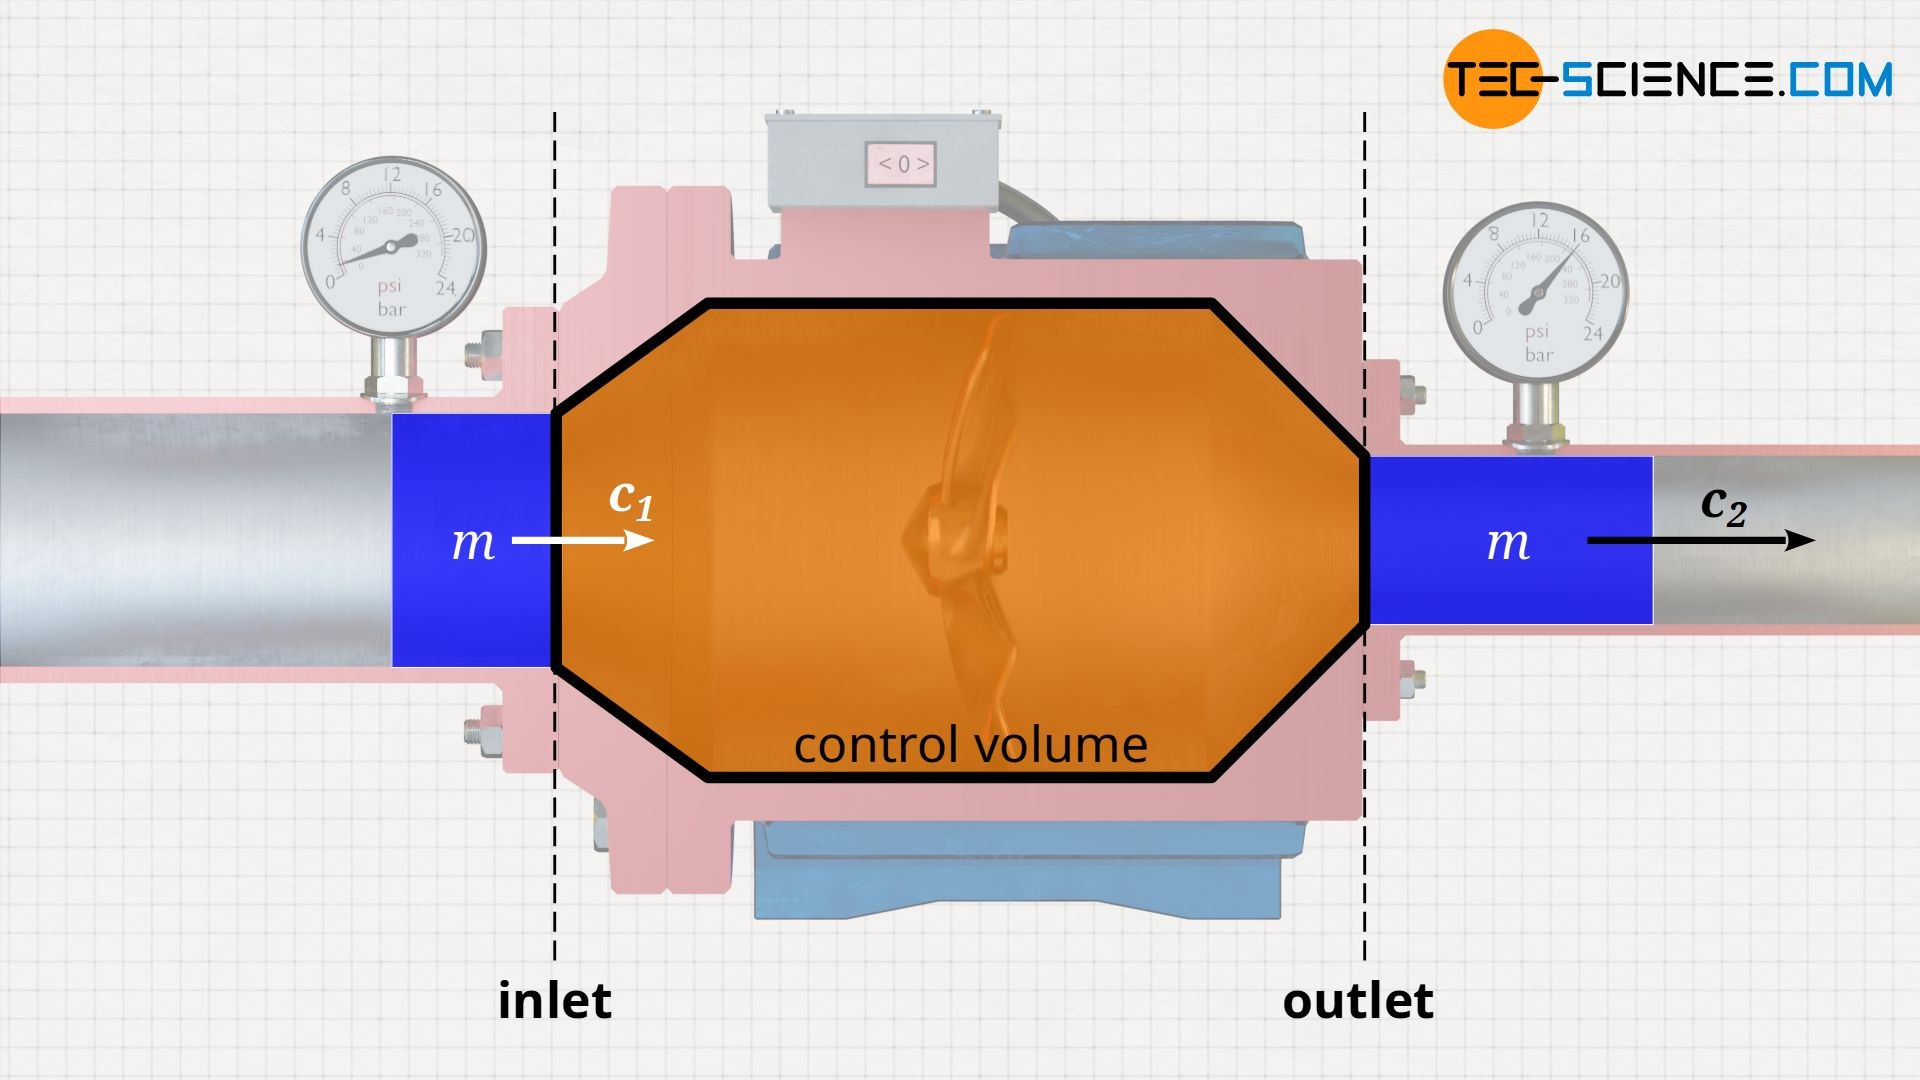 Acceleration of the fluid element when the flow cross-section is reduced